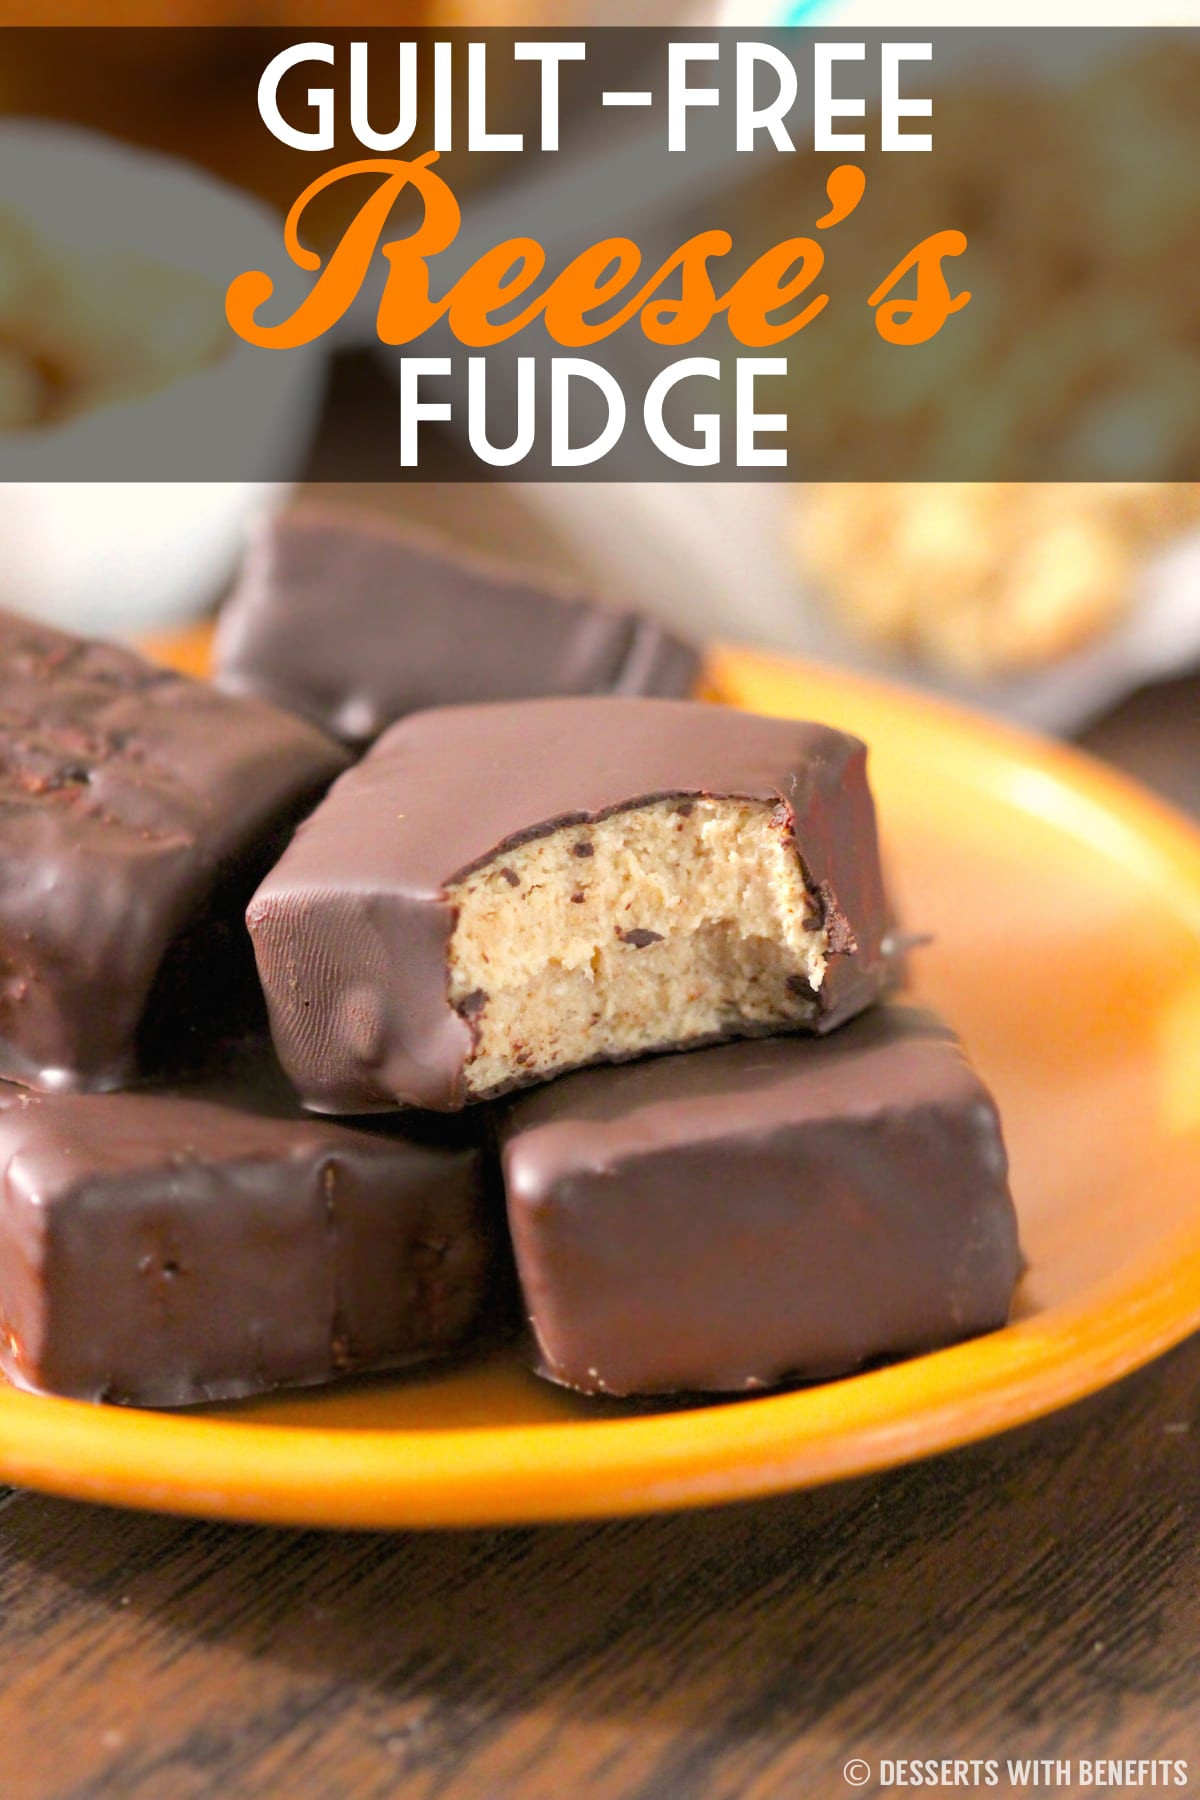 Healthy Low Fat Desserts  Healthy Reese s Fudge Desserts with Benefits